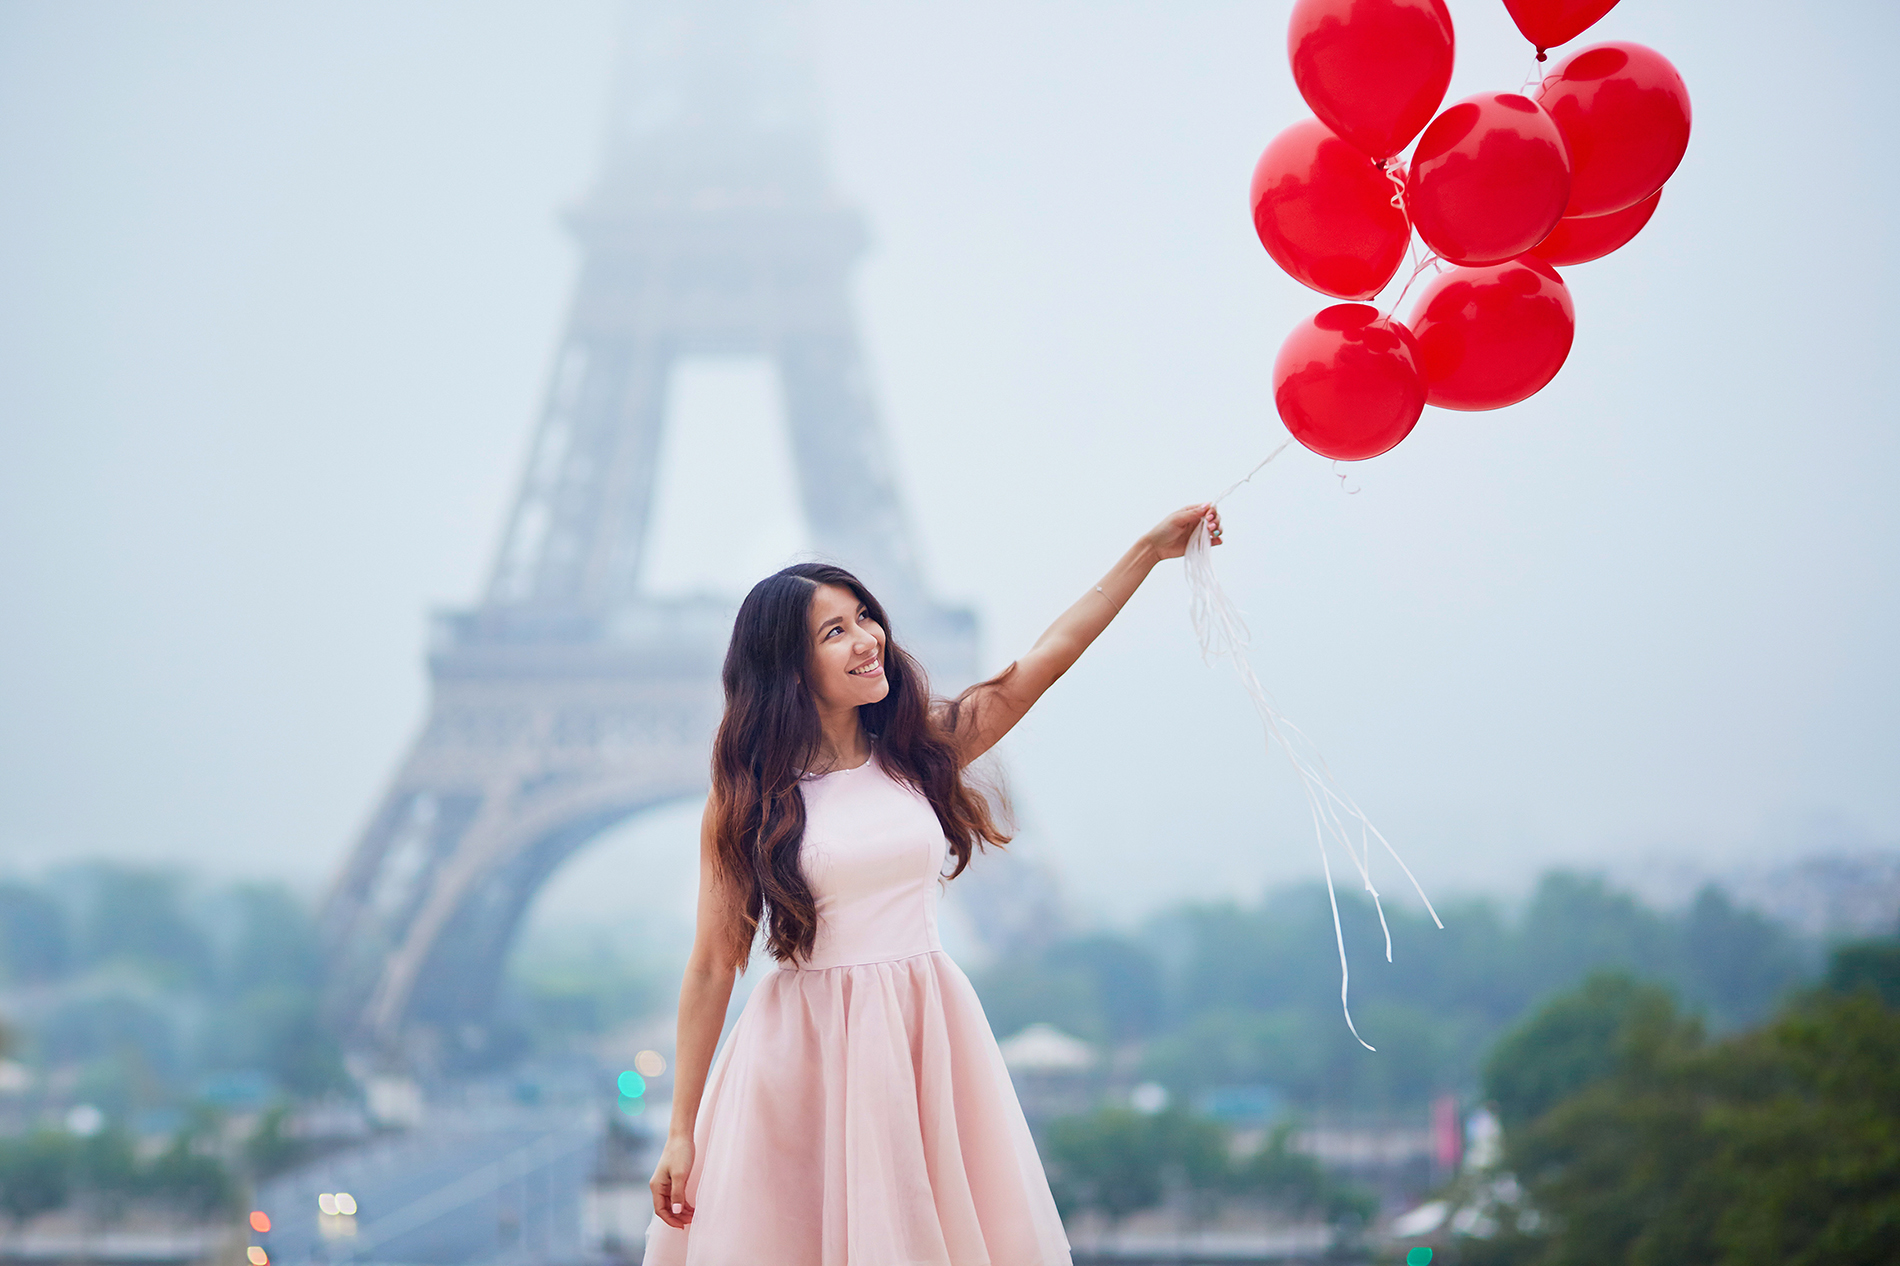 At the red balloon girl 53915